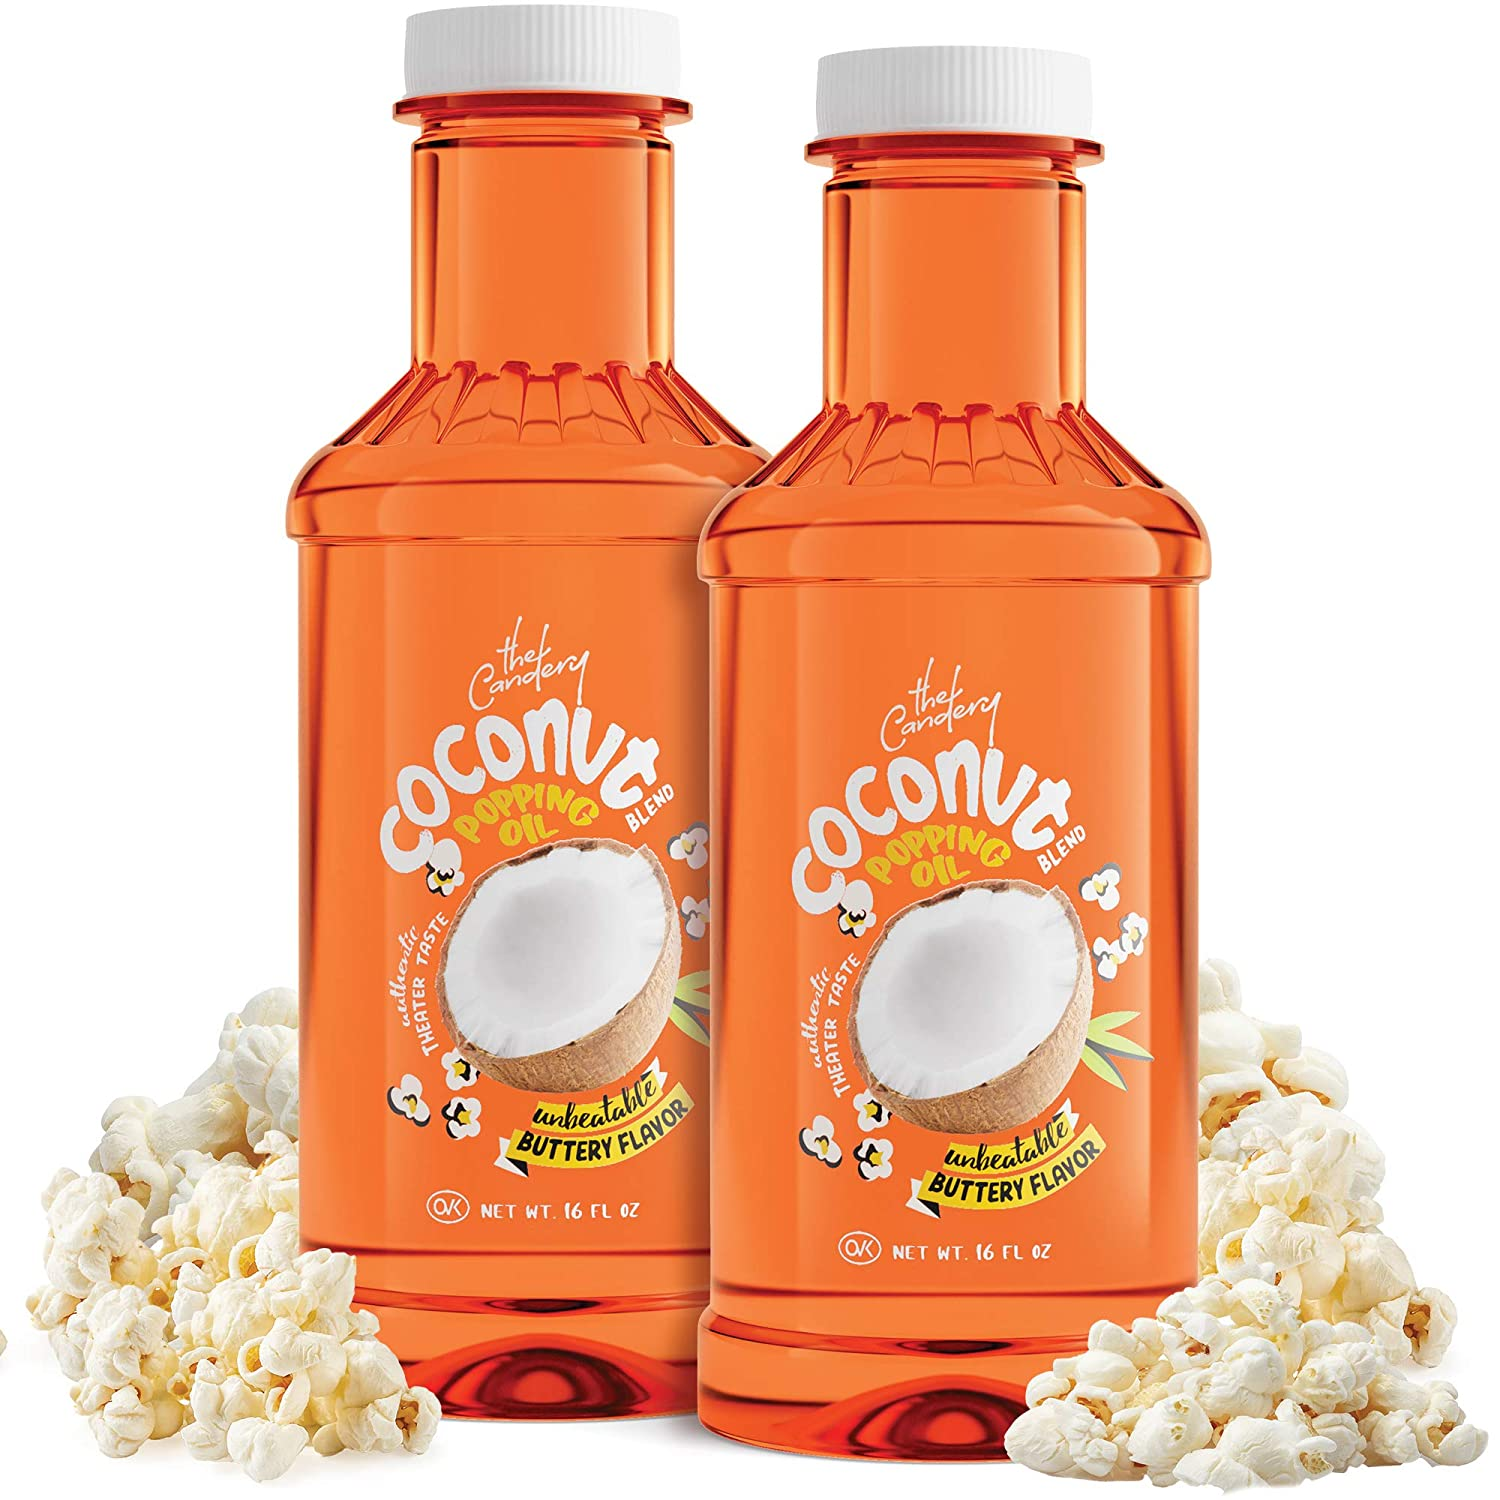 32 oz Coconut Popcorn Popping and Topping Oil Soy Blend with Authentic Theater Butter Flavor - Pop Corn Oil Liquid Form for The Movie Theater Experience at Home - 2 Pack (16 oz Each) - by The Candery